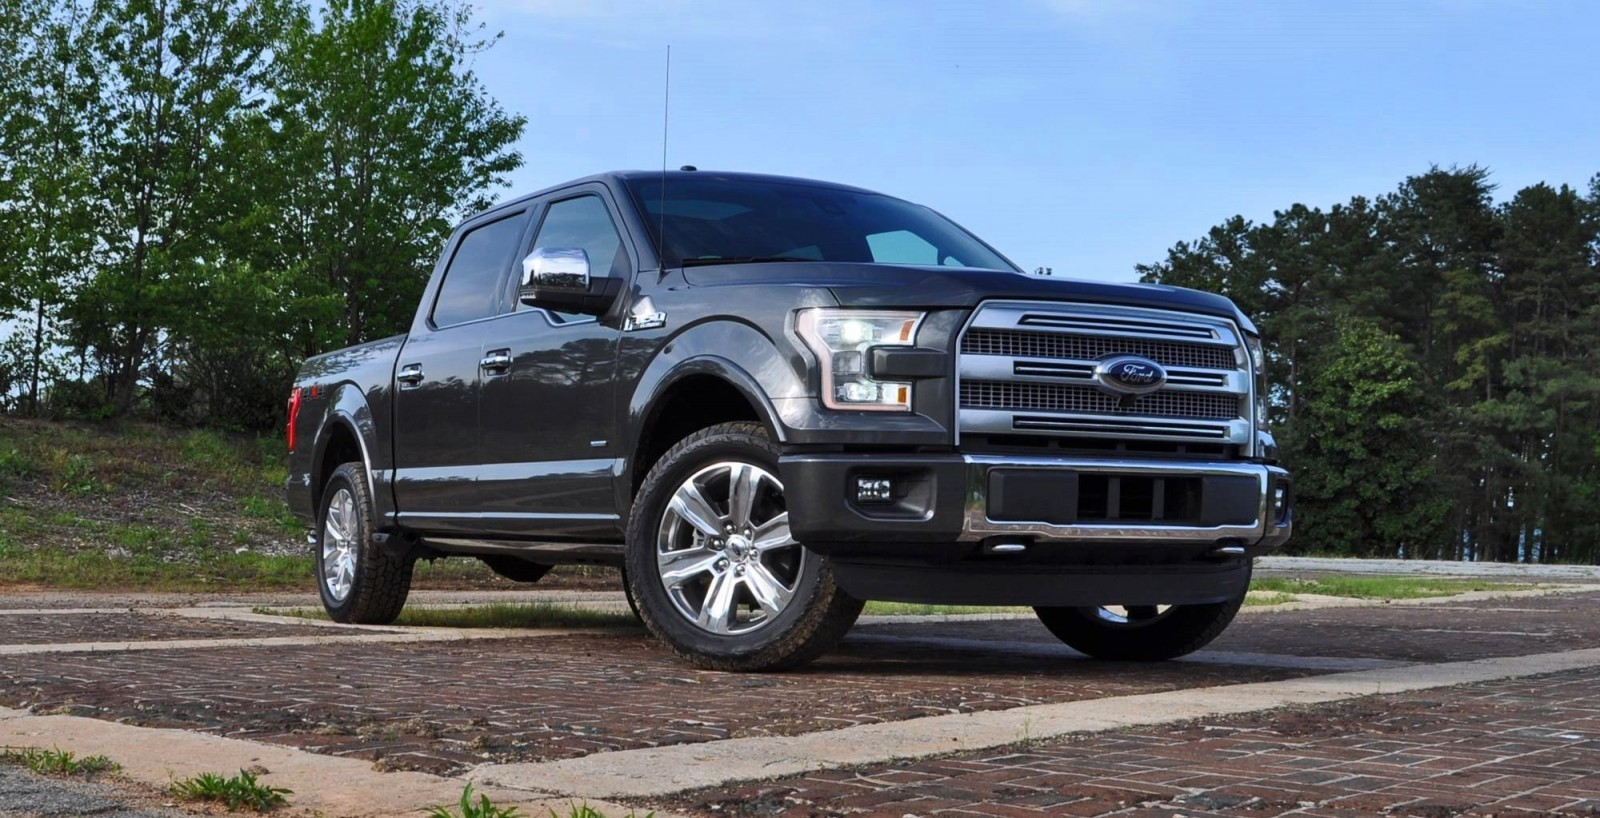 2015 ford f 150 platinum 4x4 supercrew review 14. Black Bedroom Furniture Sets. Home Design Ideas